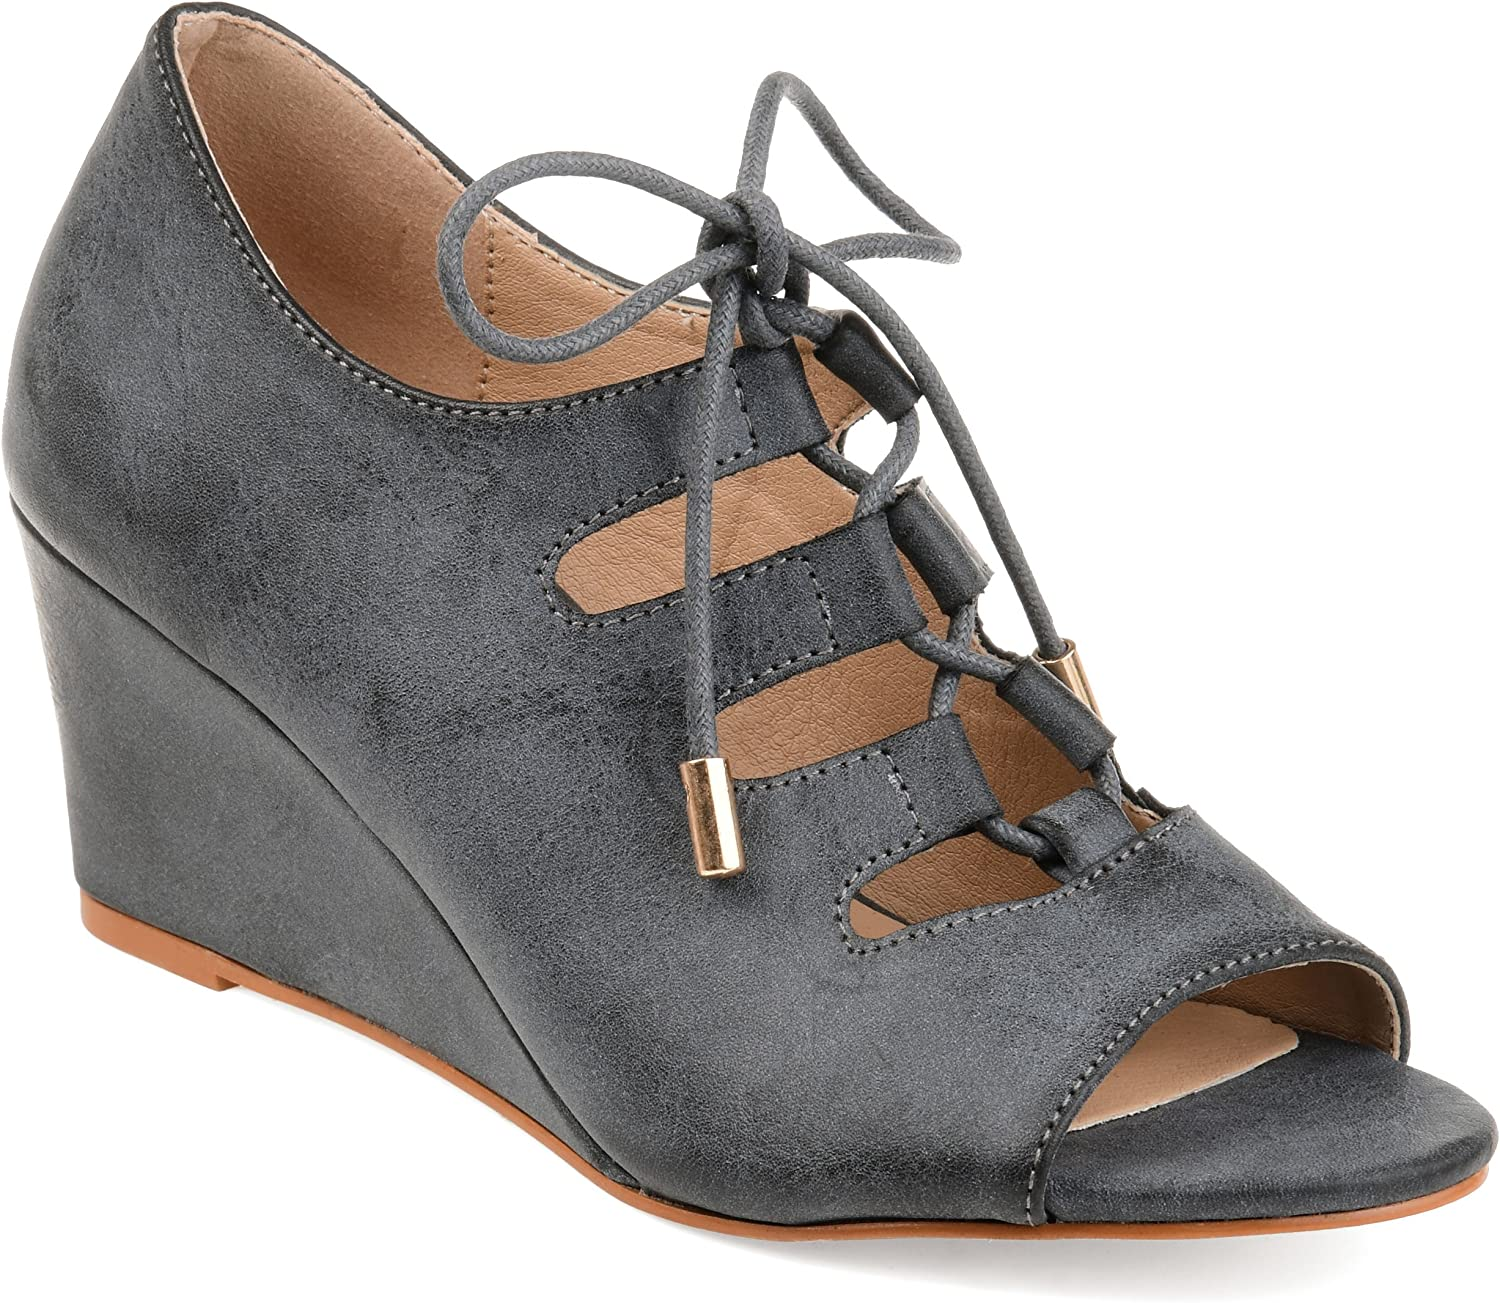 Journee Collection Womens Faux Leather Open Toe Lace-up Wedges